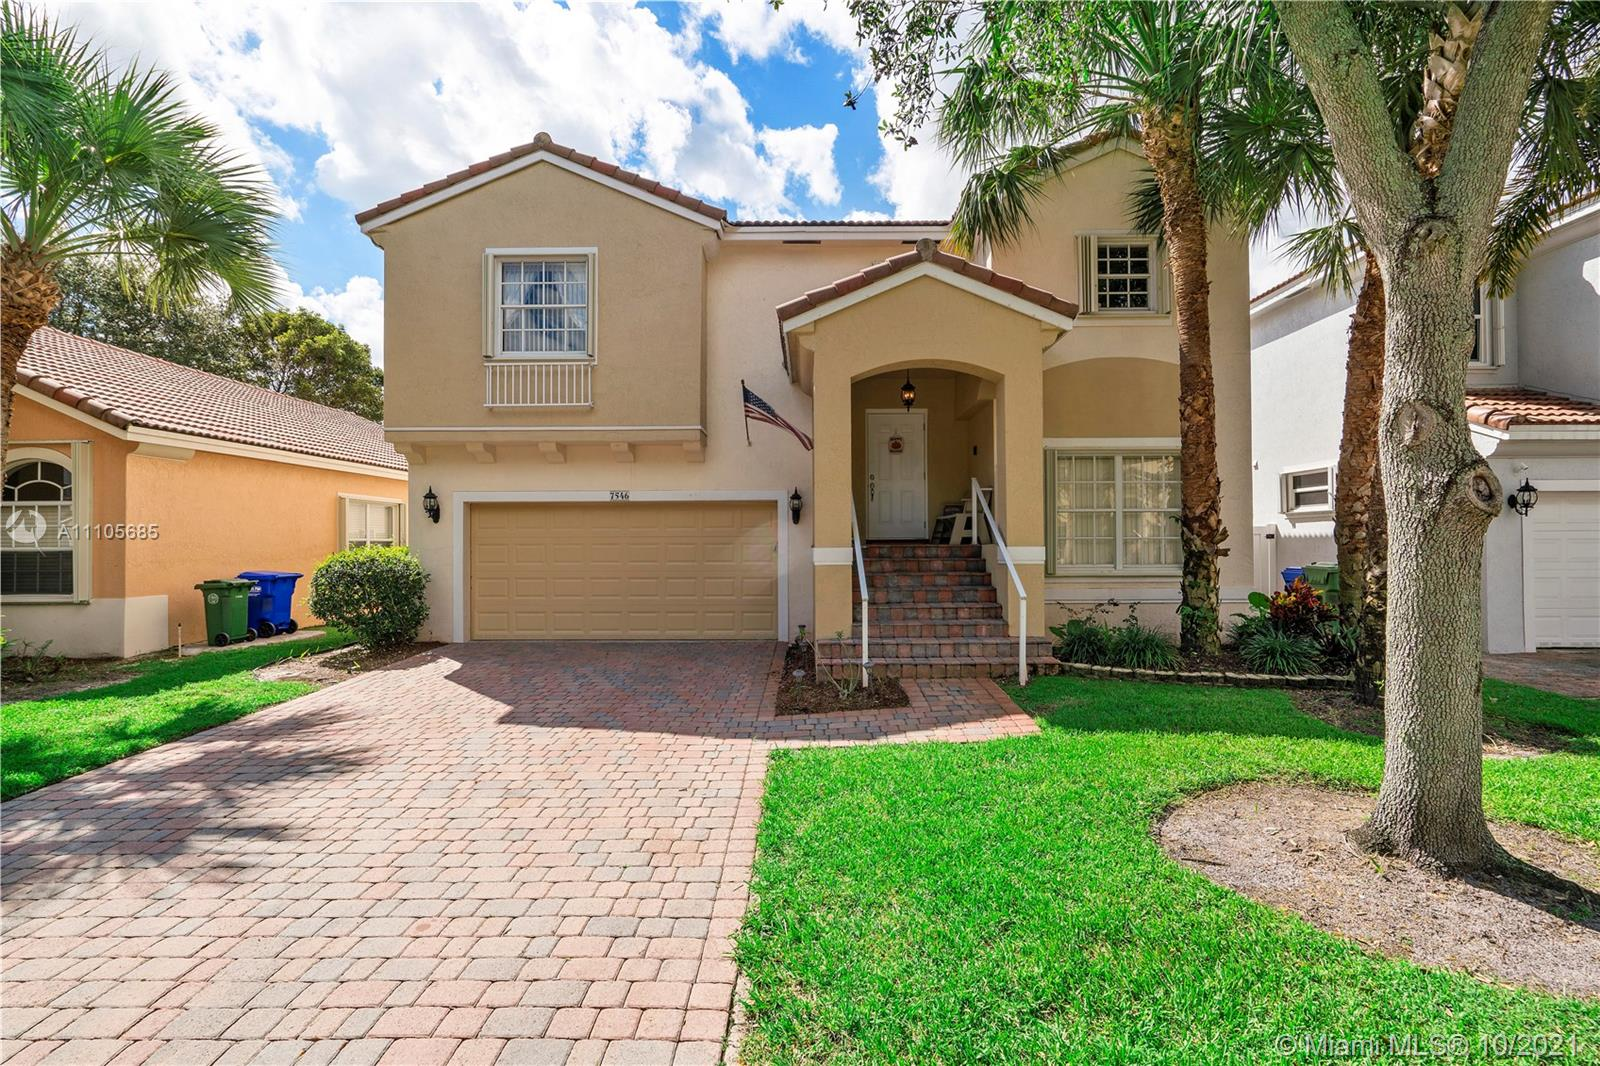 Property for sale at 7546 NW 18th Dr Unit: 7546, Pembroke Pines,  Florida 33024